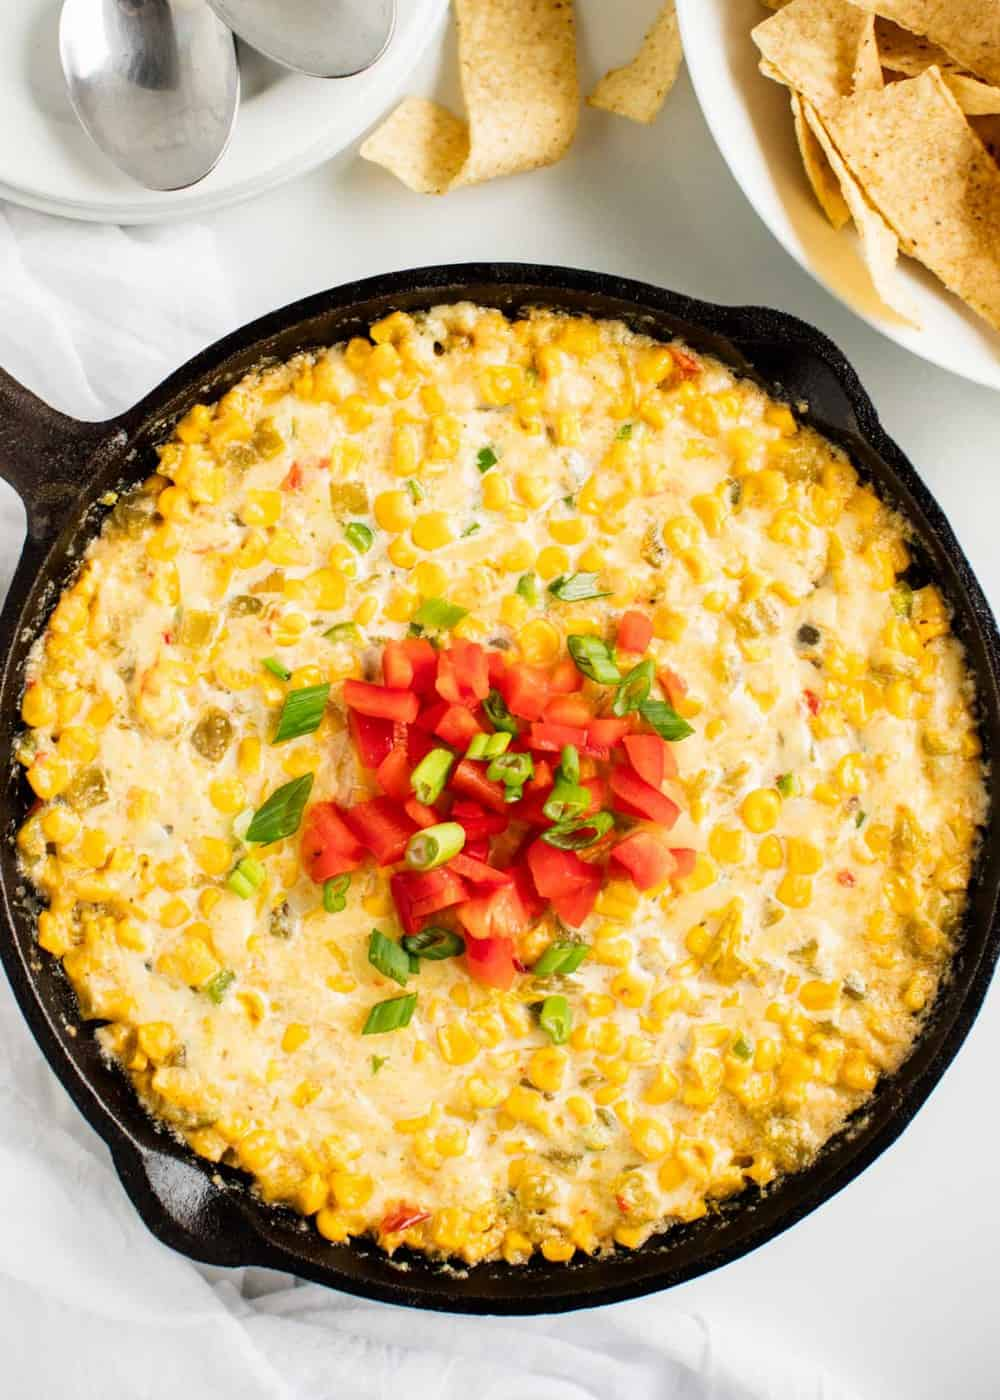 corn dip baked in skillet with tortilla chips